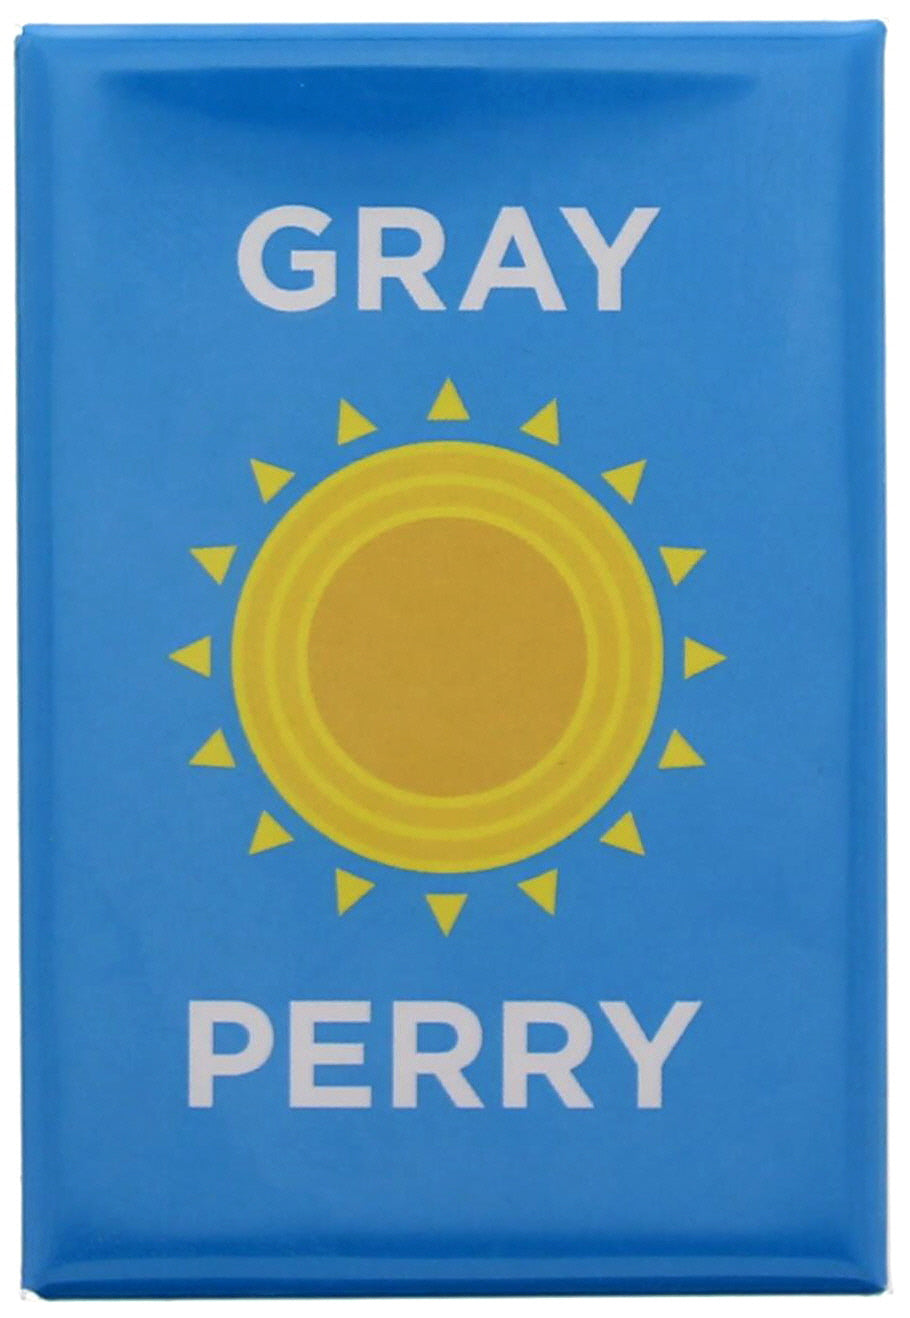 (Grayson) Perry Fridge Magnet